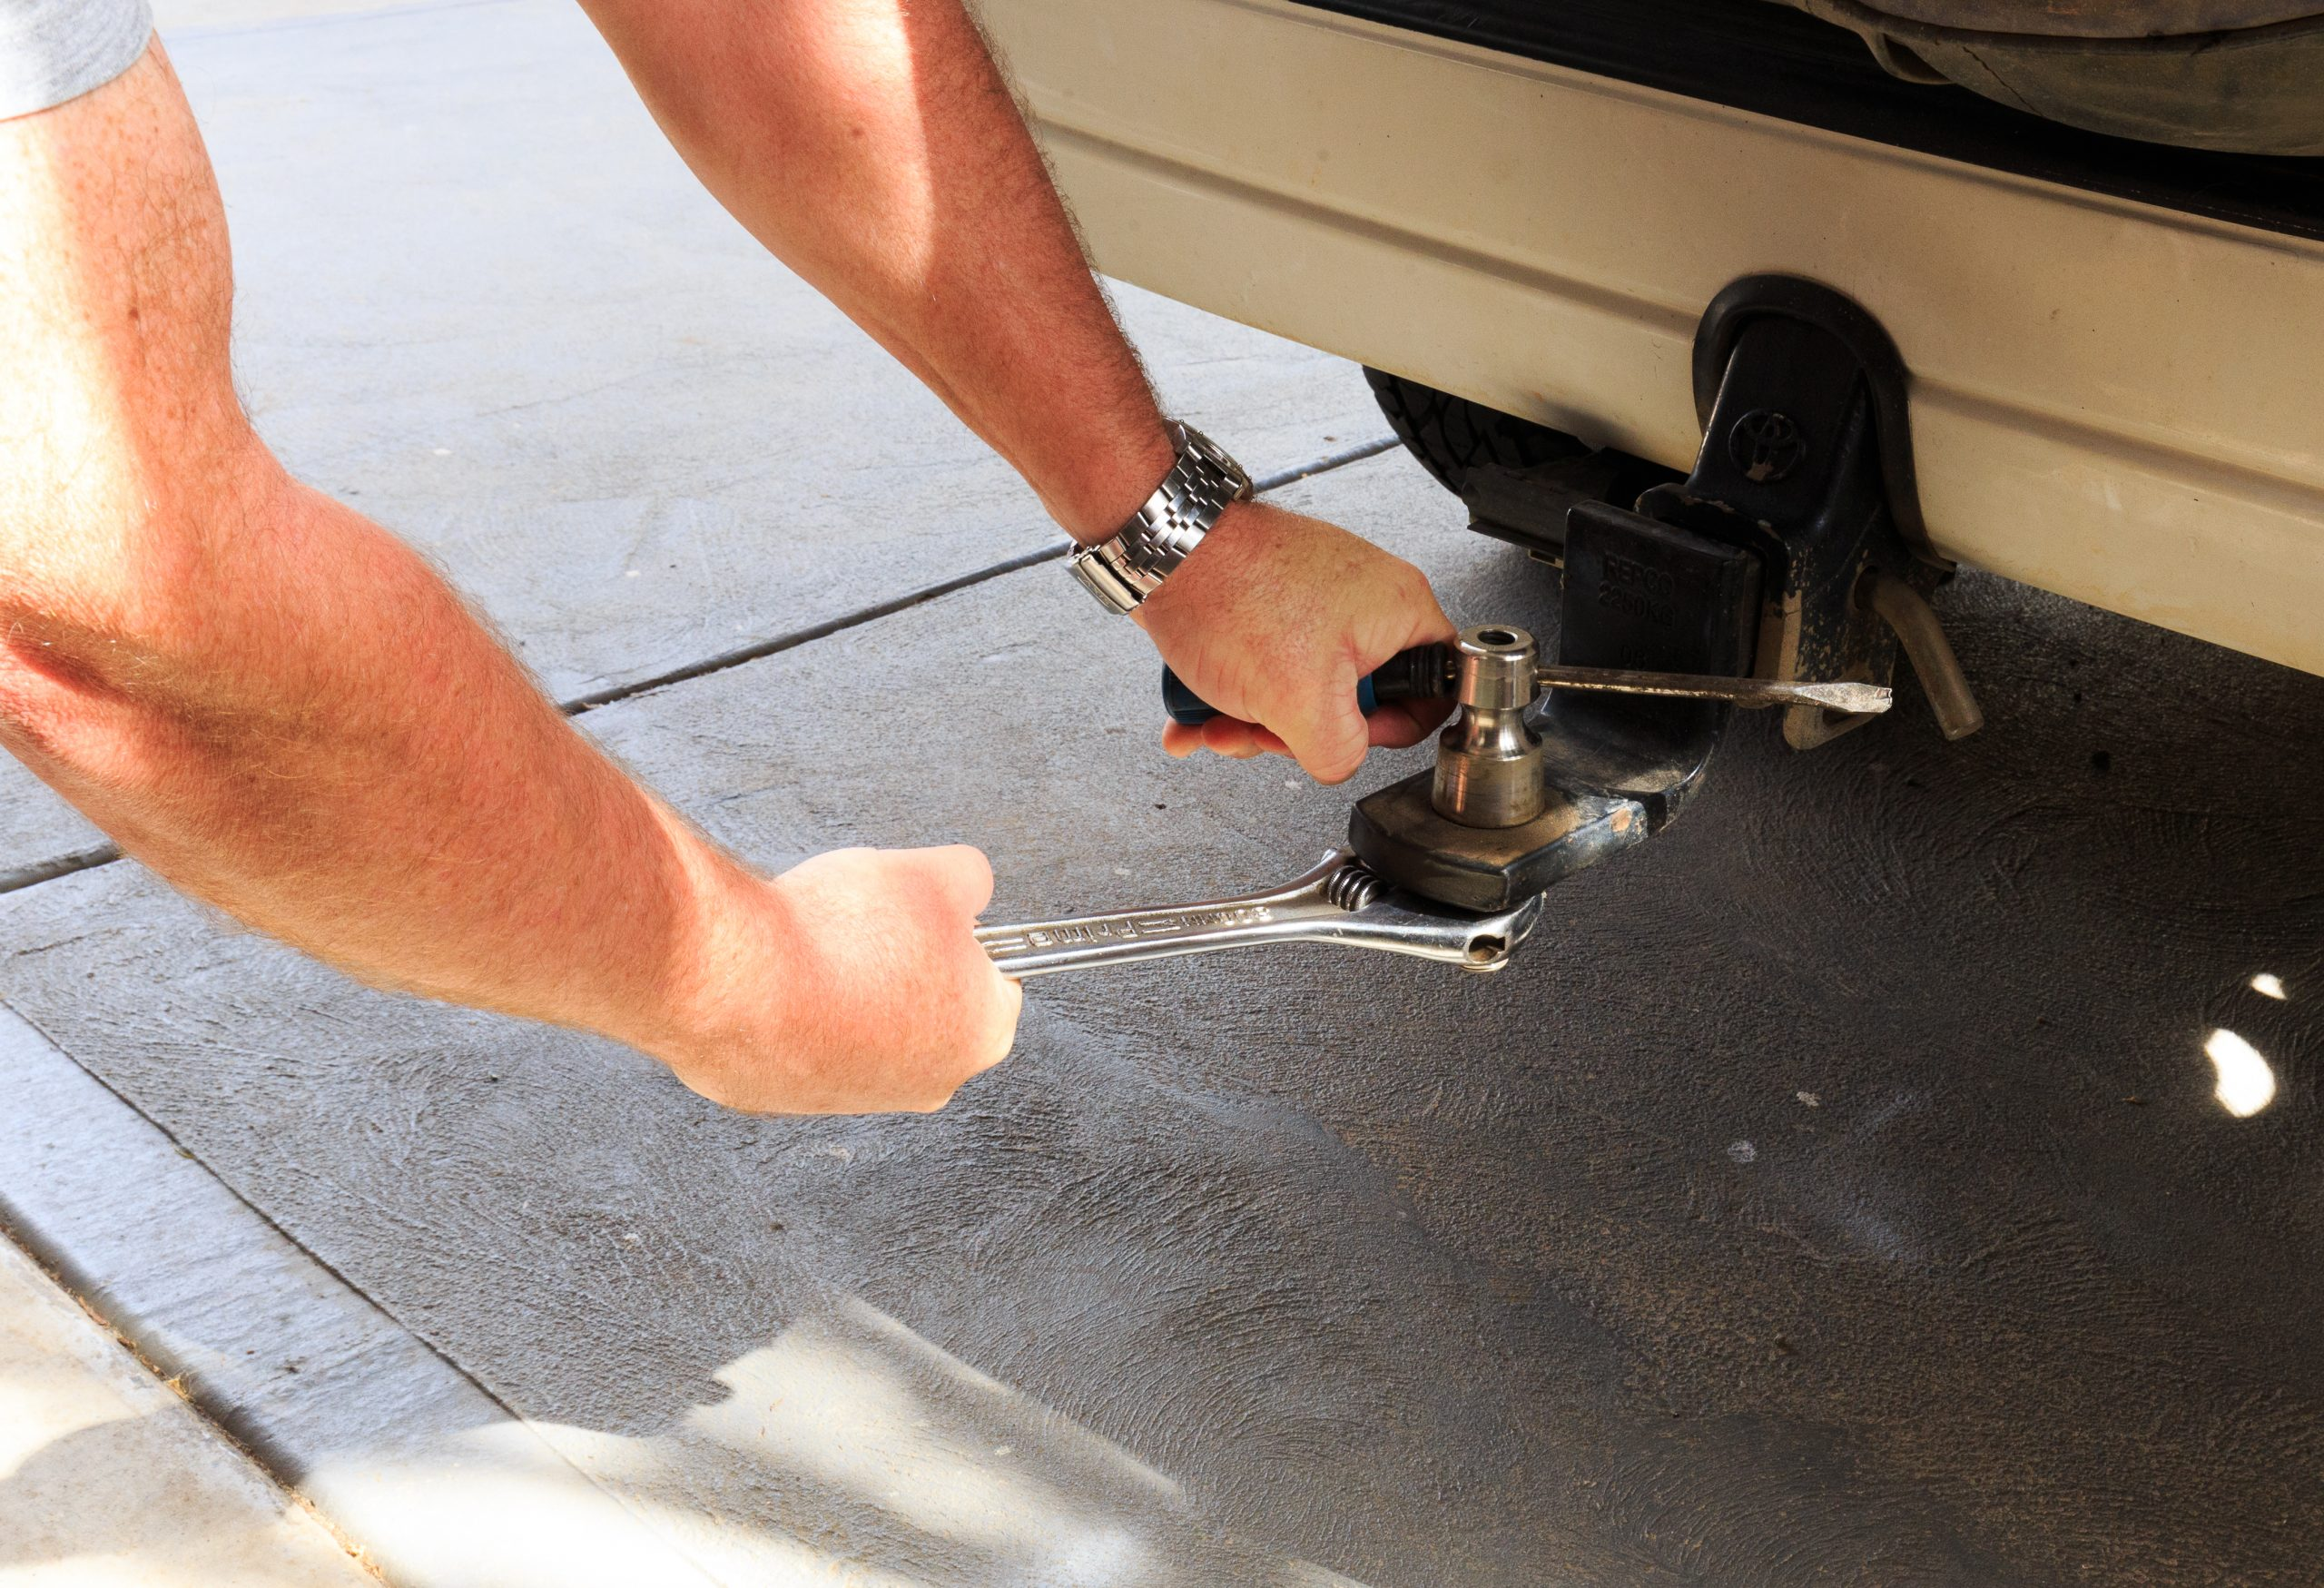 A large shifter is an essential RV tool